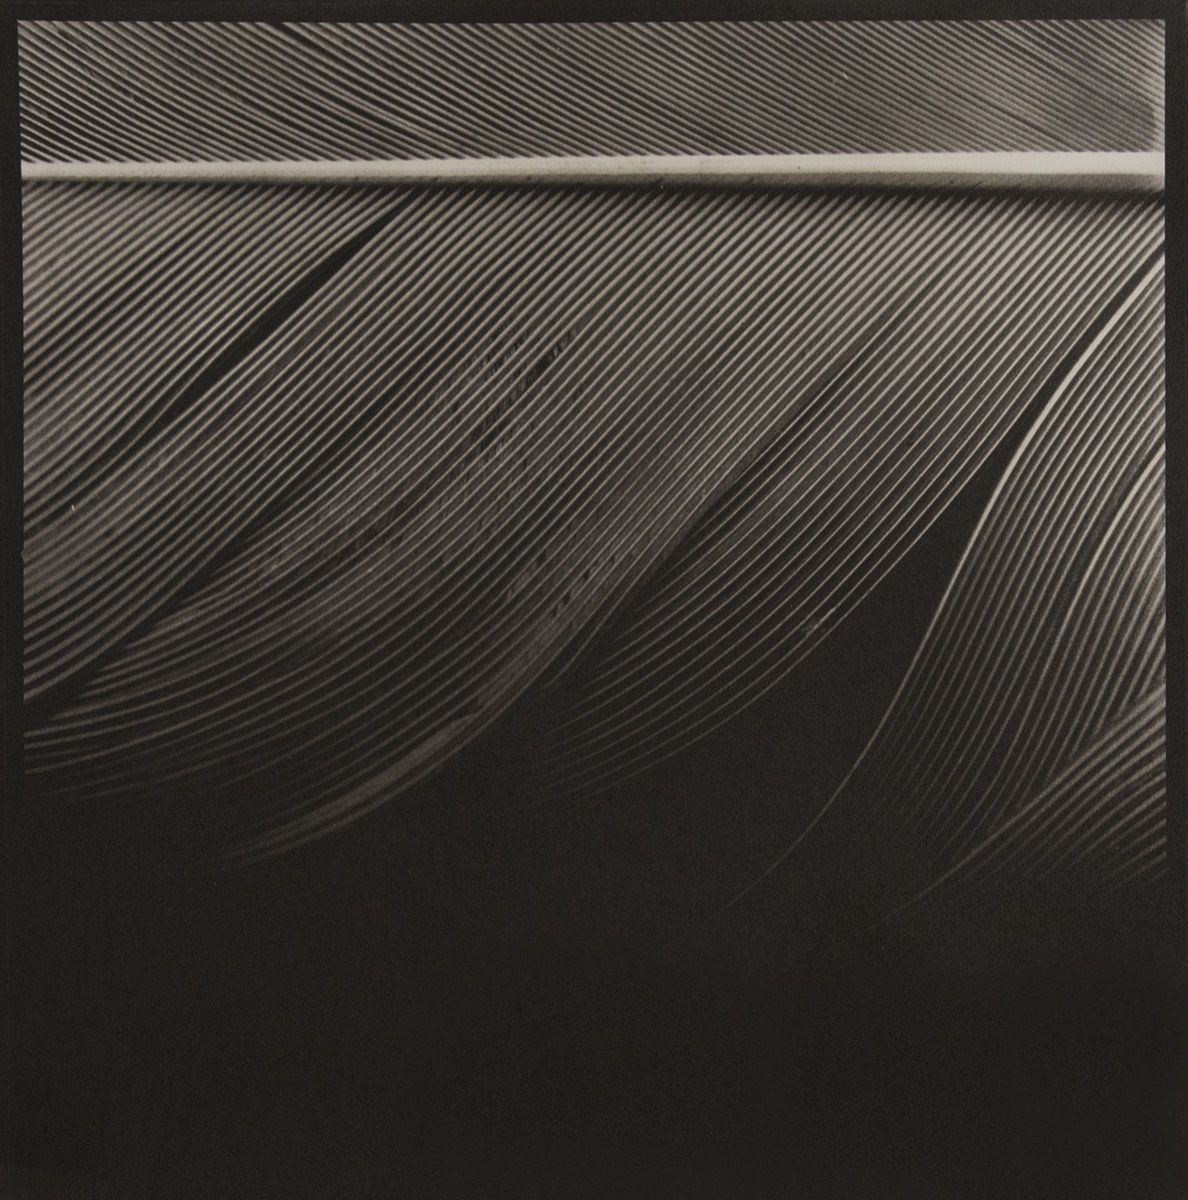 ELDERS, FEATHER SERIES (4 OF 5), platinum photograph 1992